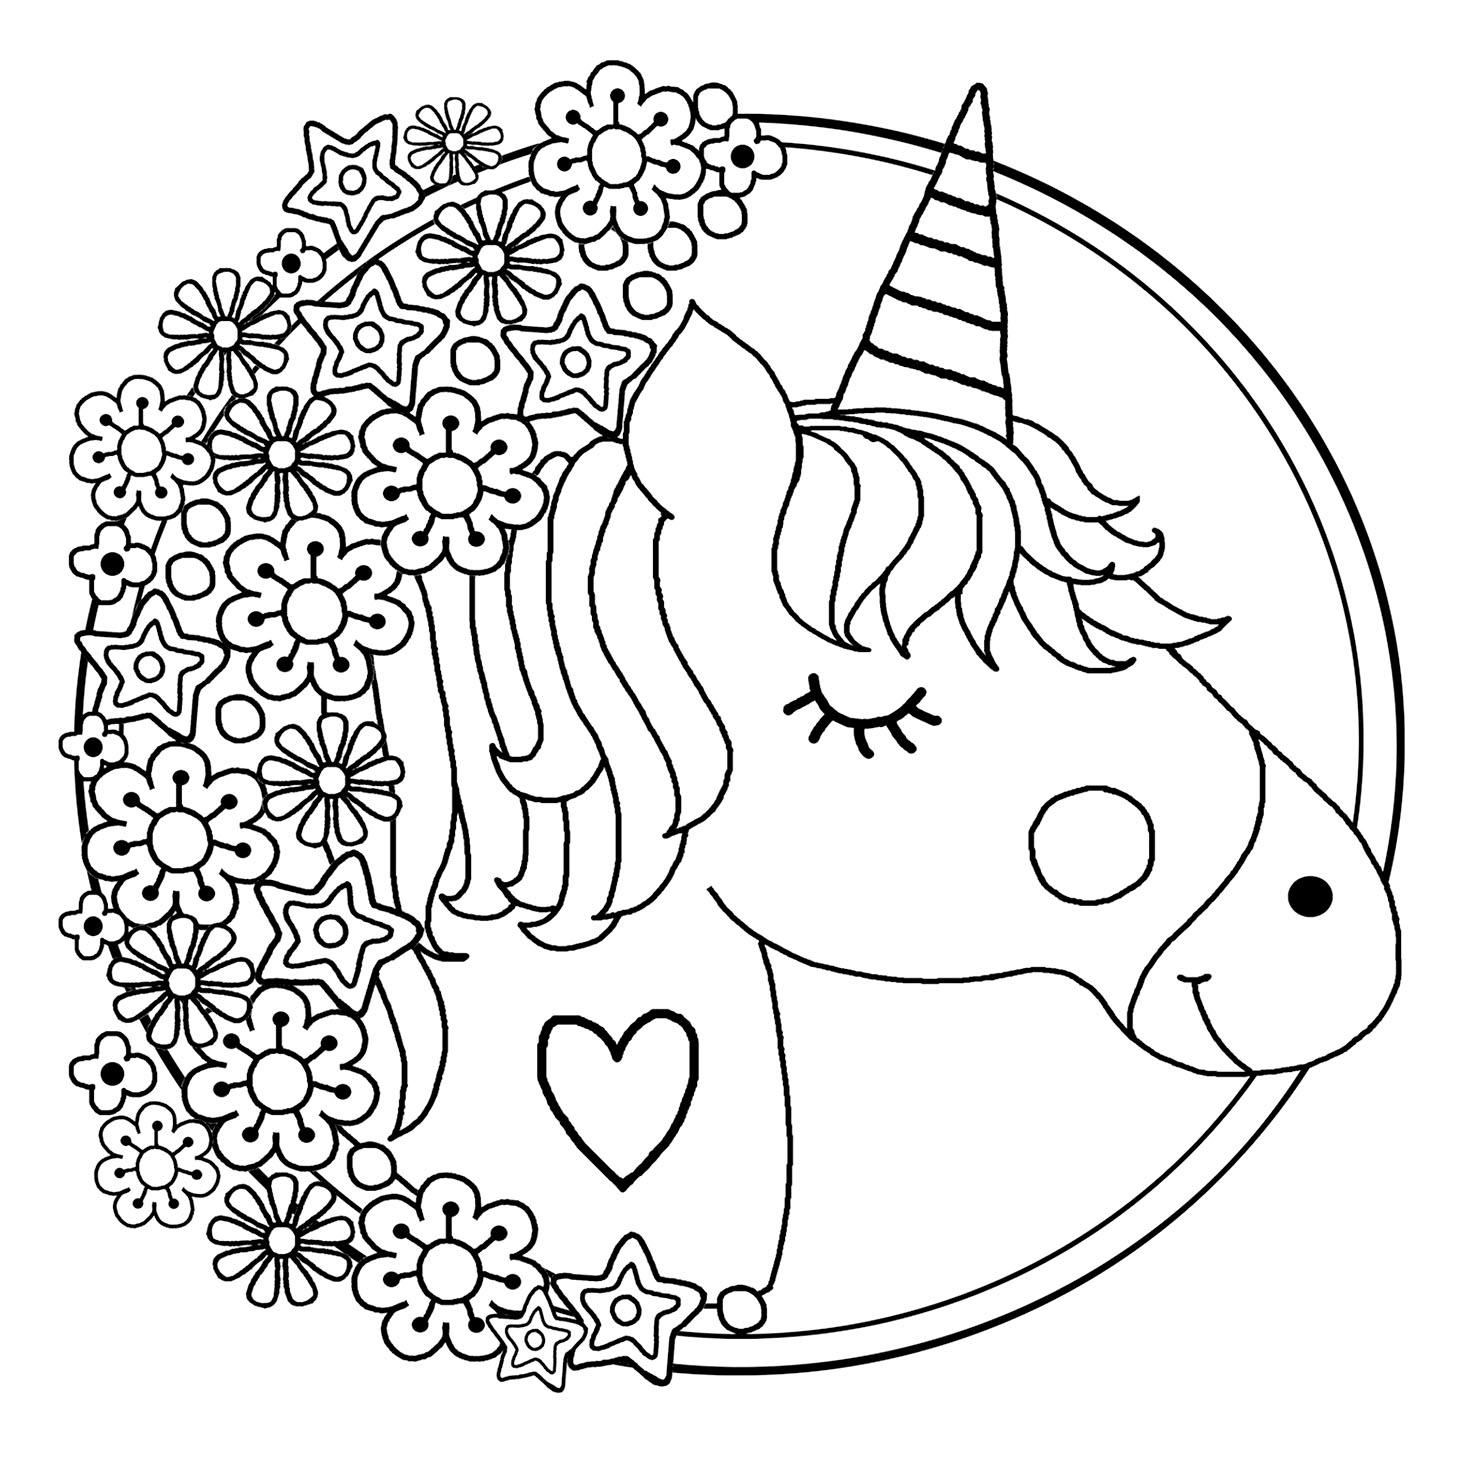 coloring for unicorn unicorn coloring pages for kids at getdrawings free download for unicorn coloring